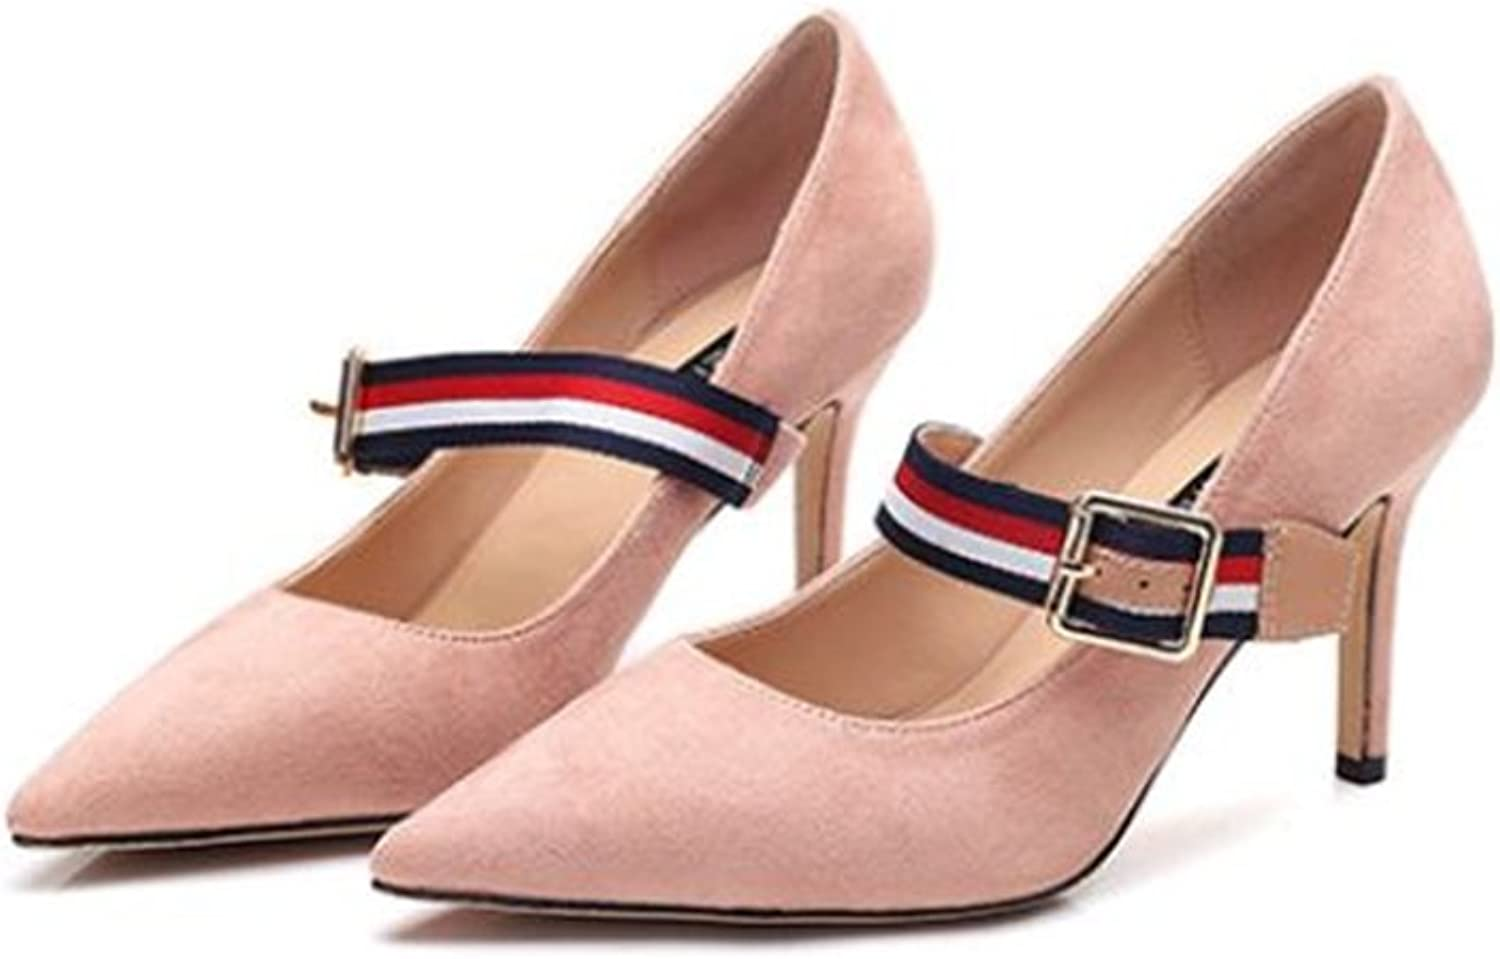 SUNNY Store Women's Fashion Classic Fashion Pointed Toe High Heel Dress Pumps shoes